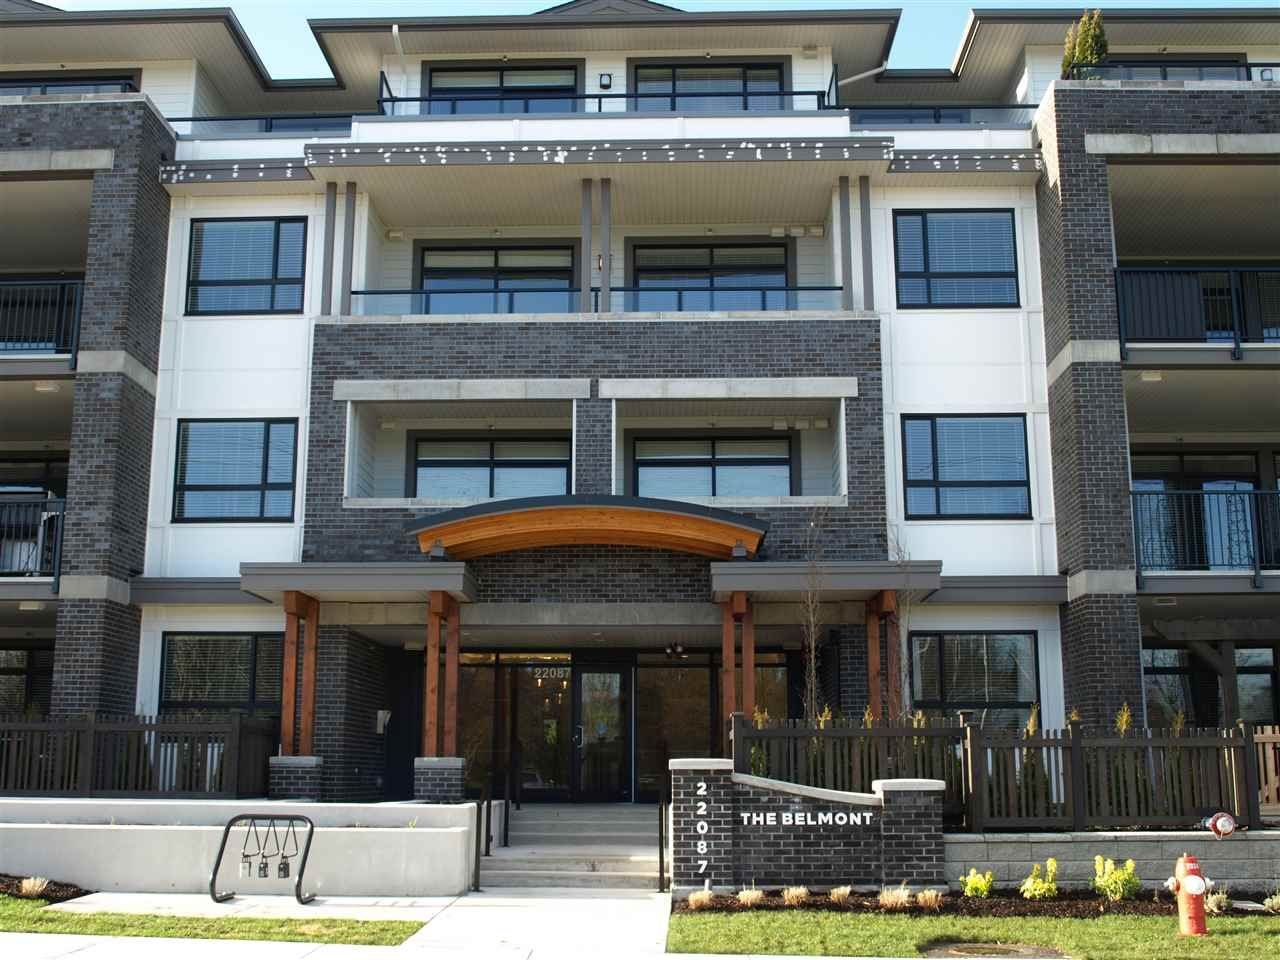 """Main Photo: 203 22087 49 Avenue in Langley: Murrayville Condo for sale in """"The Belmont in Murrayville"""" : MLS®# R2352425"""